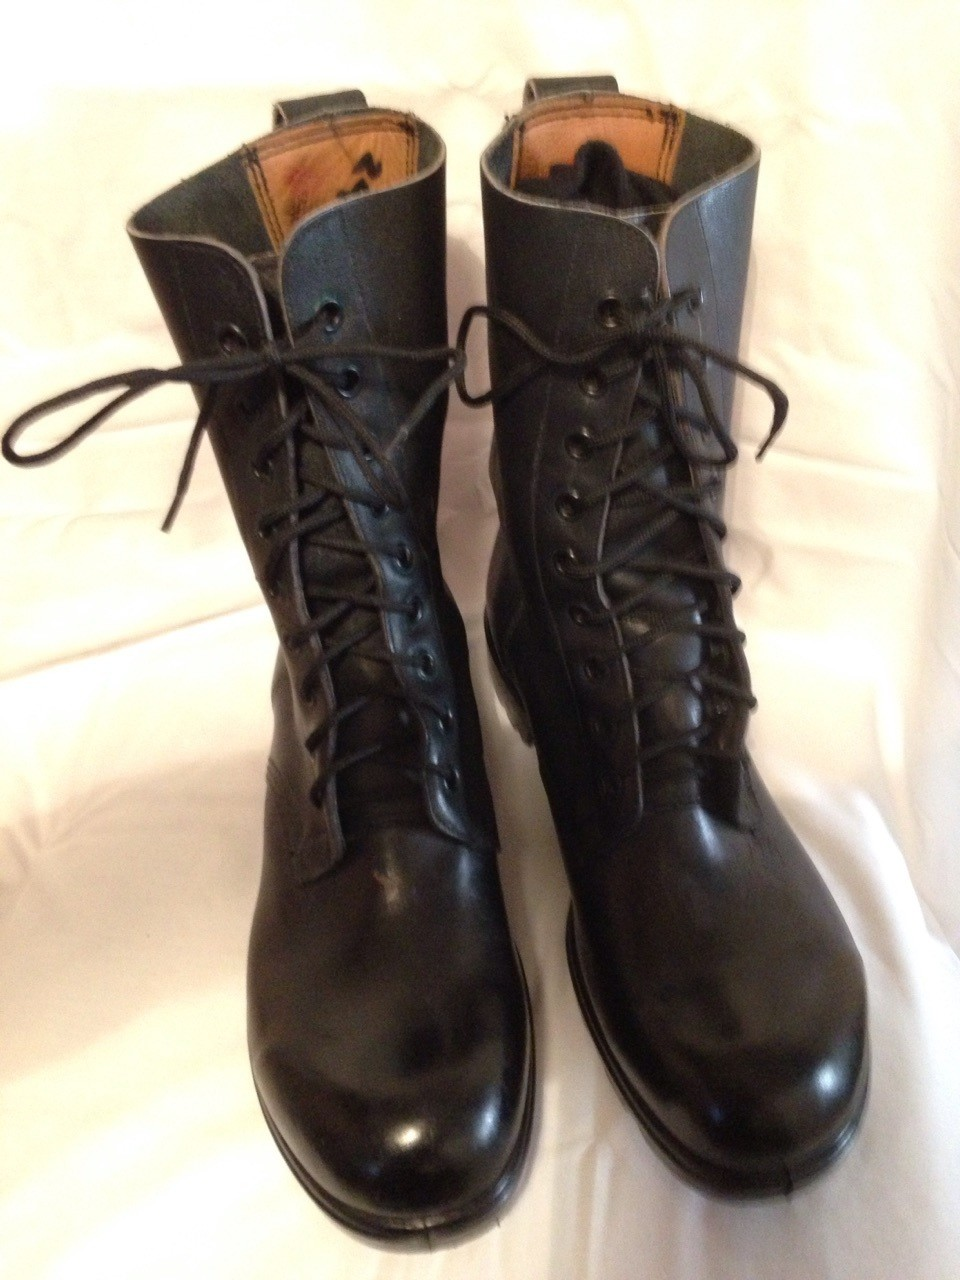 British Army Size 10s High Leg Boots